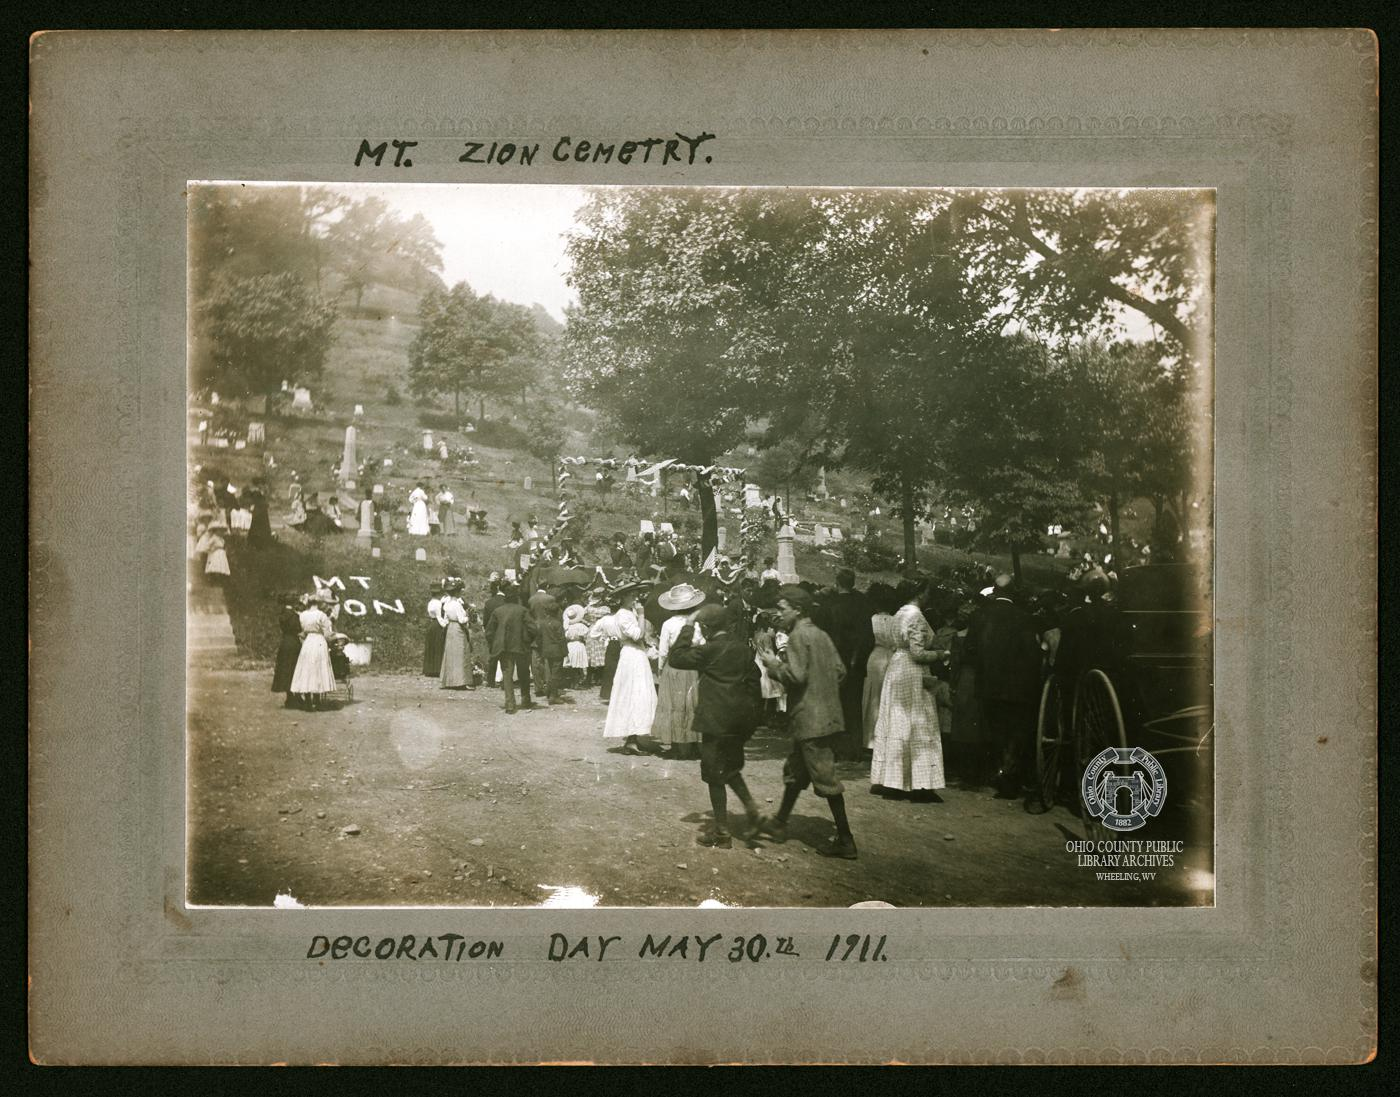 Decoration Day at Mt. Zion Cemetery, May 30, 1911